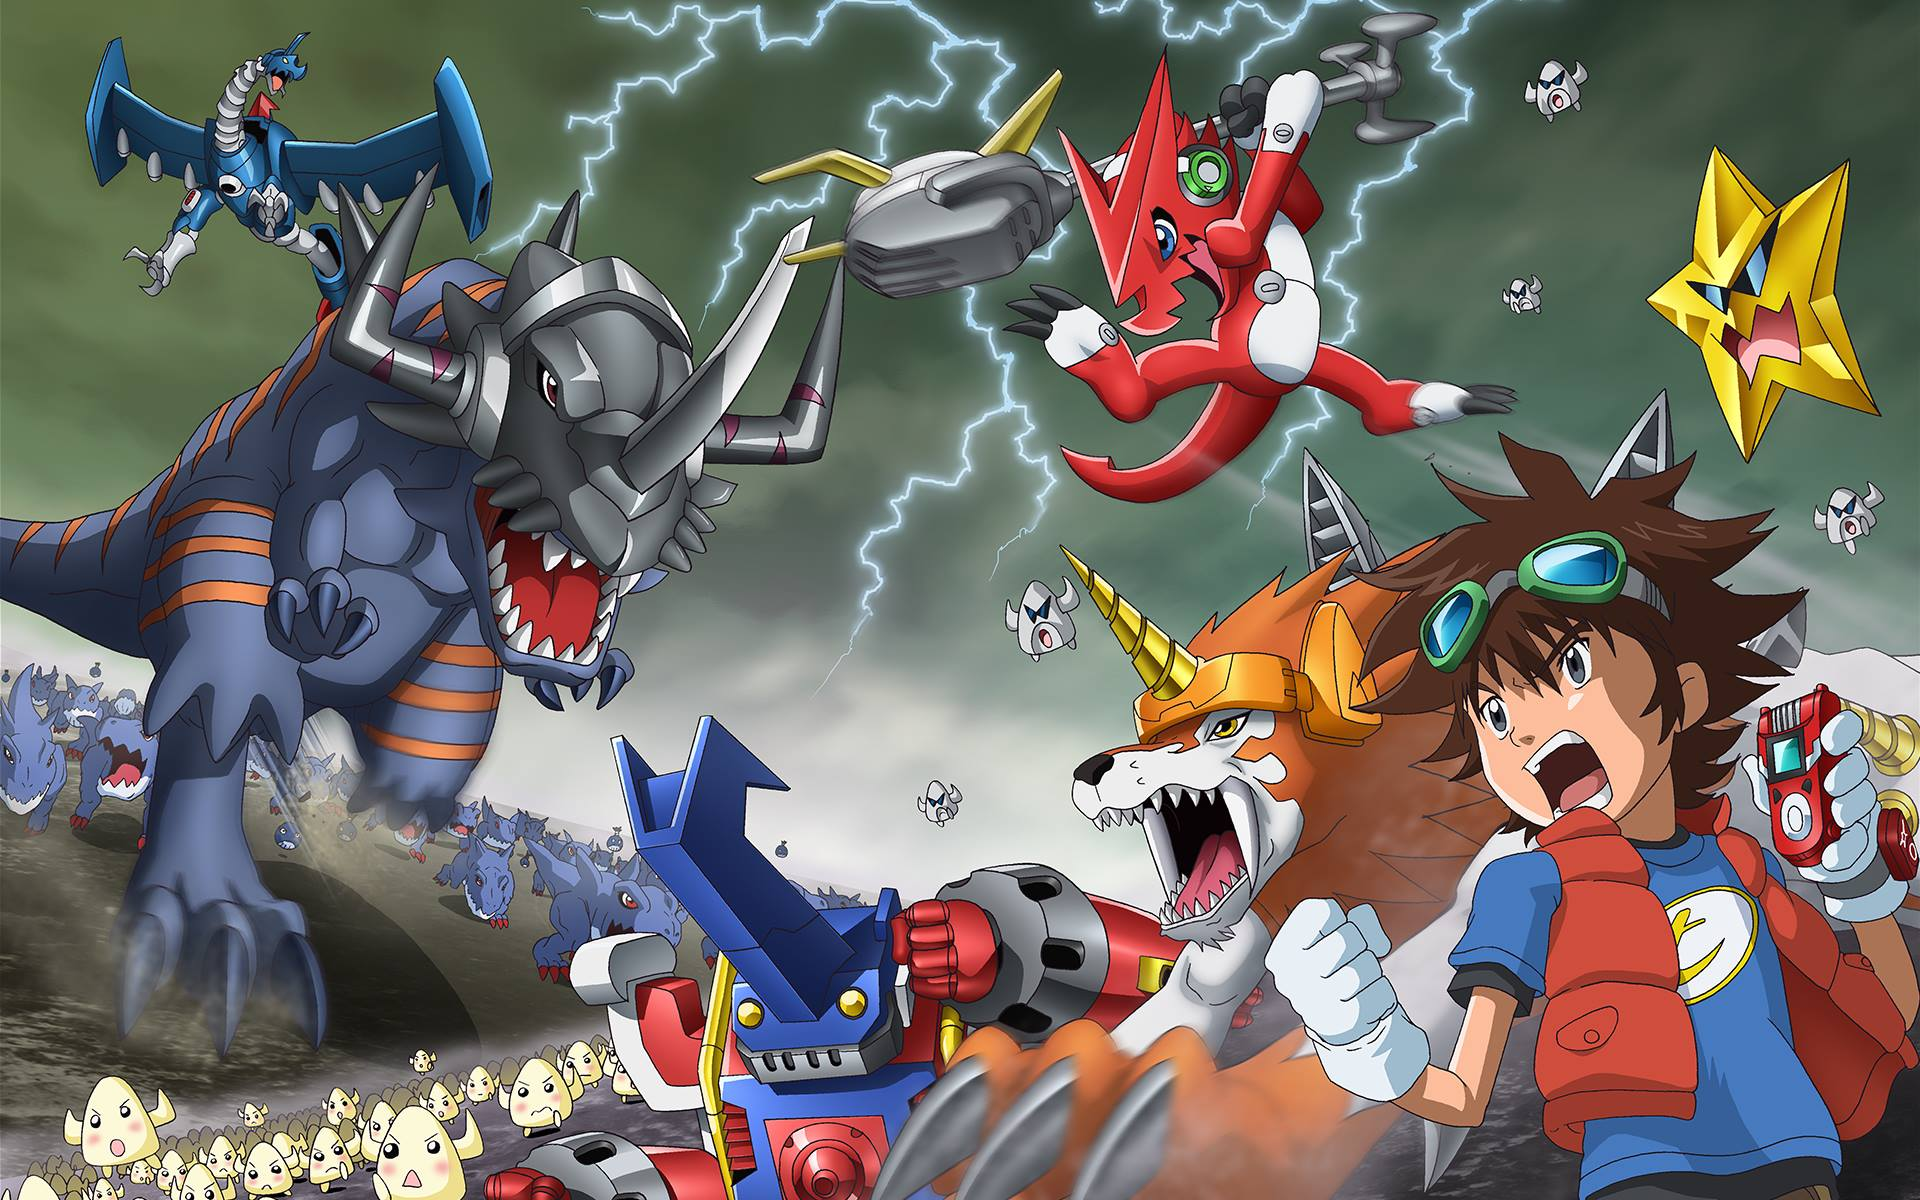 http://wikimon.net/images/d/da/Digimon_xros_wars_promo_art2.png